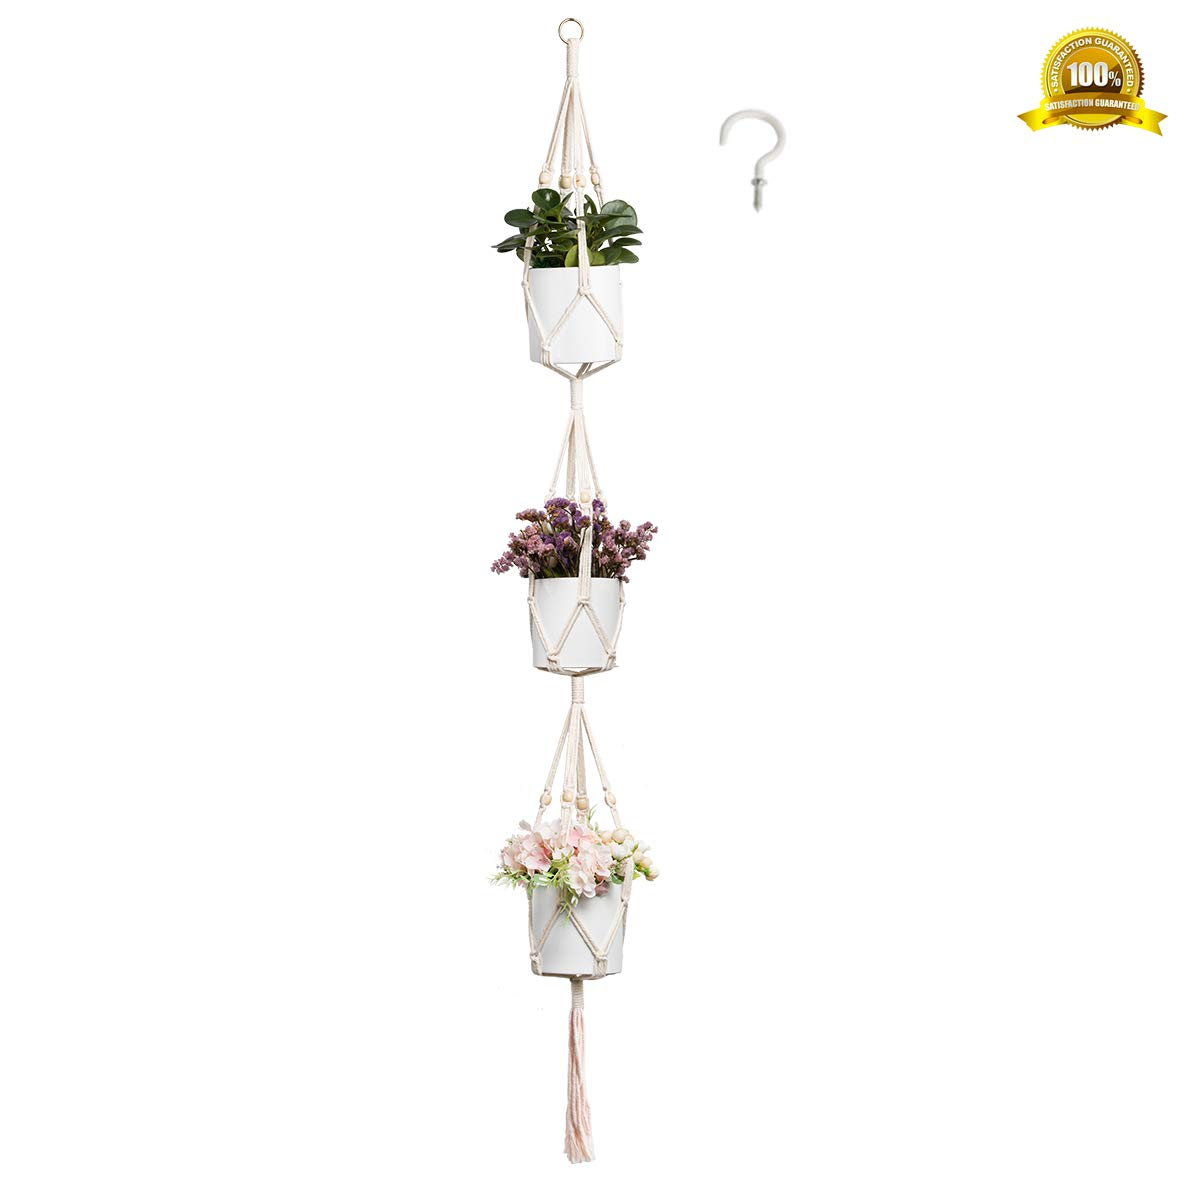 ENUOSUMA 3 Tier Plant Hanger, Indoor Outdoor Macrame Hanging Planter Flowers Pot Holder for Plants Decorations – Cotton Rope, 4 Legs, 71 Inch Bonus 1 PC Hook